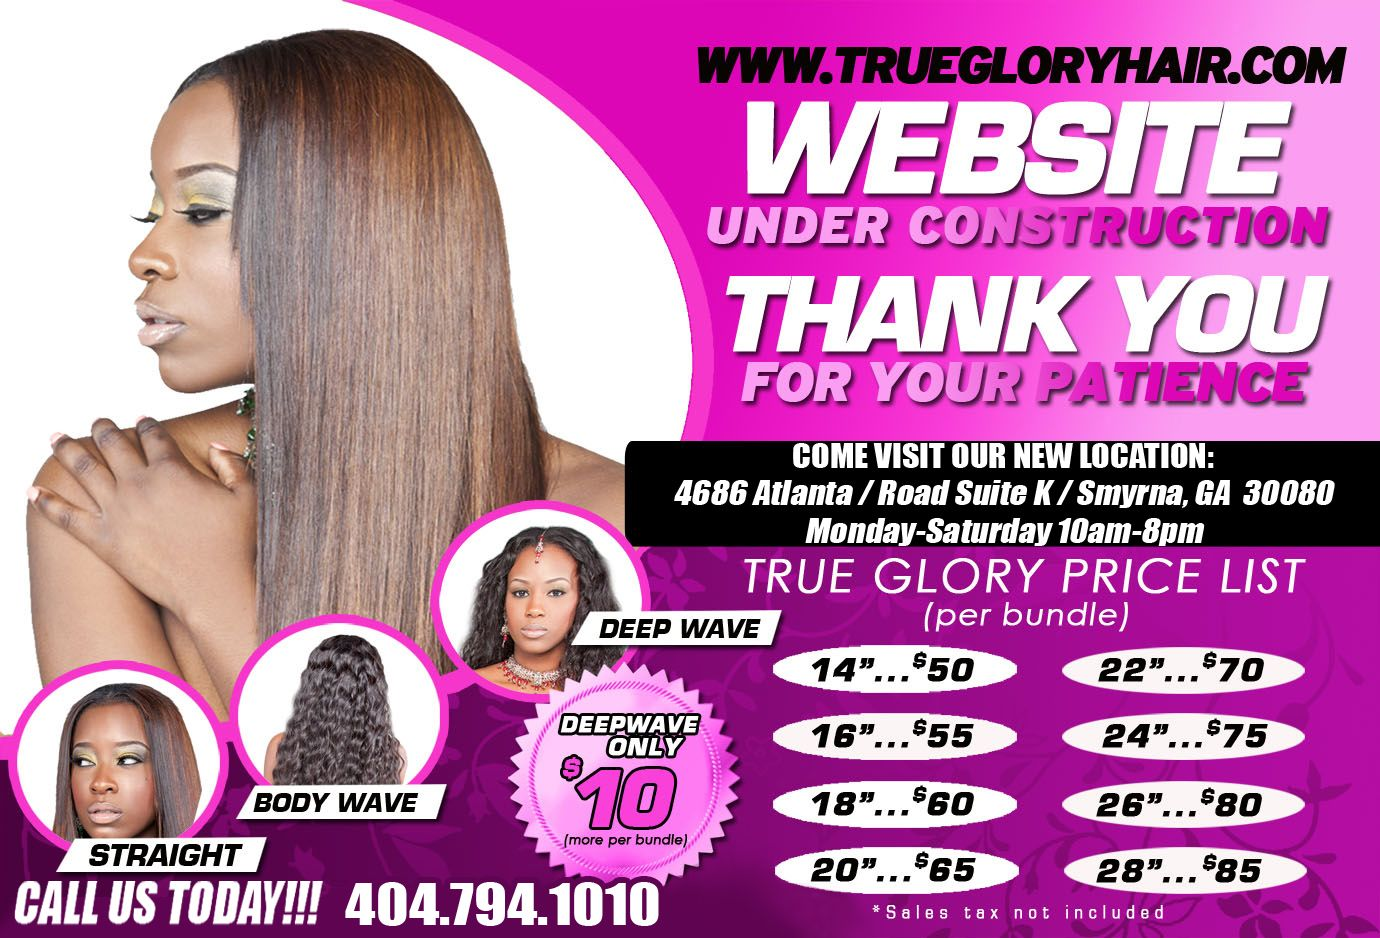 True Glory Hair Virigin Brazilian Located In Smyrna Ga